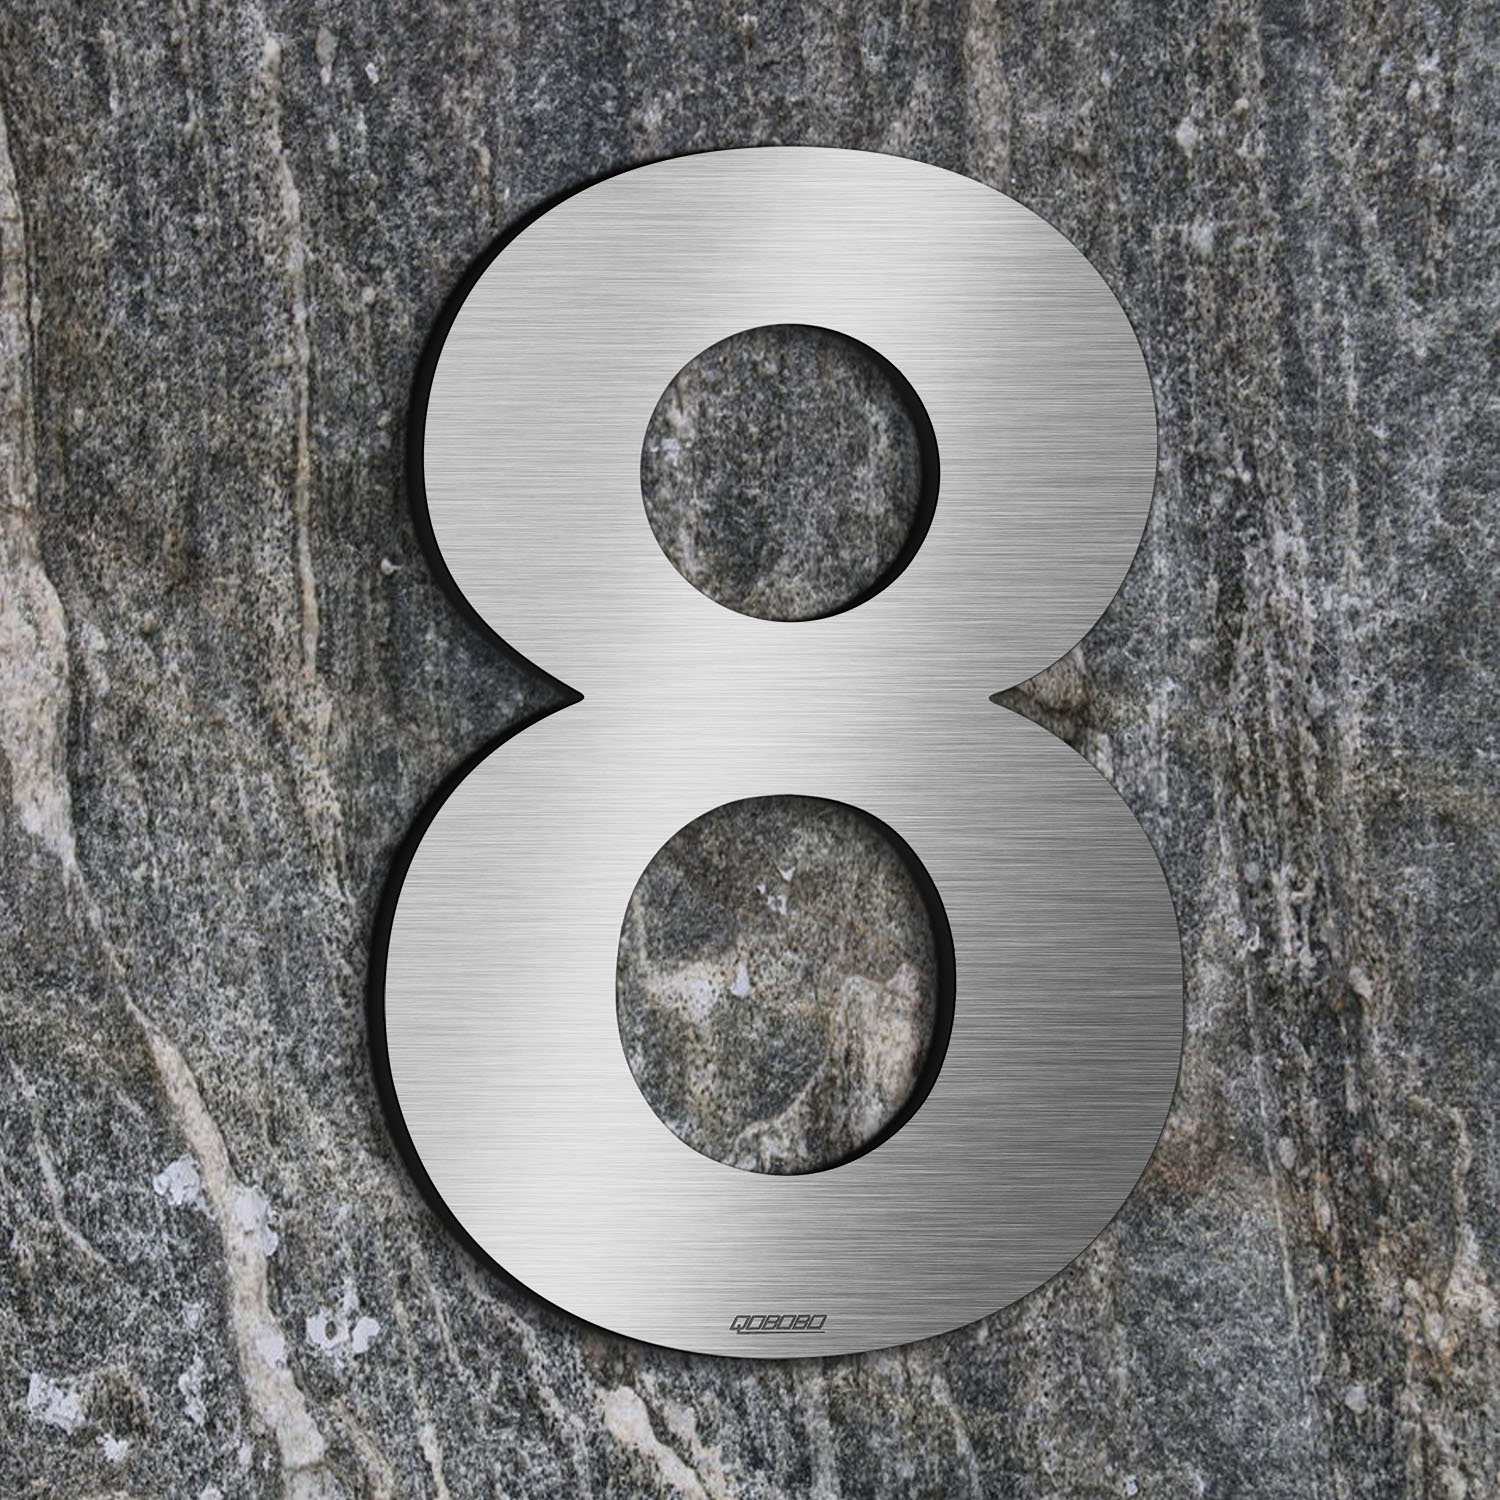 qobobo® Brushed House Number 8 Eight made of solid 304 Stainless Steel Floating Appearance 20cm 7.87 in Easy to install (1 pieces)